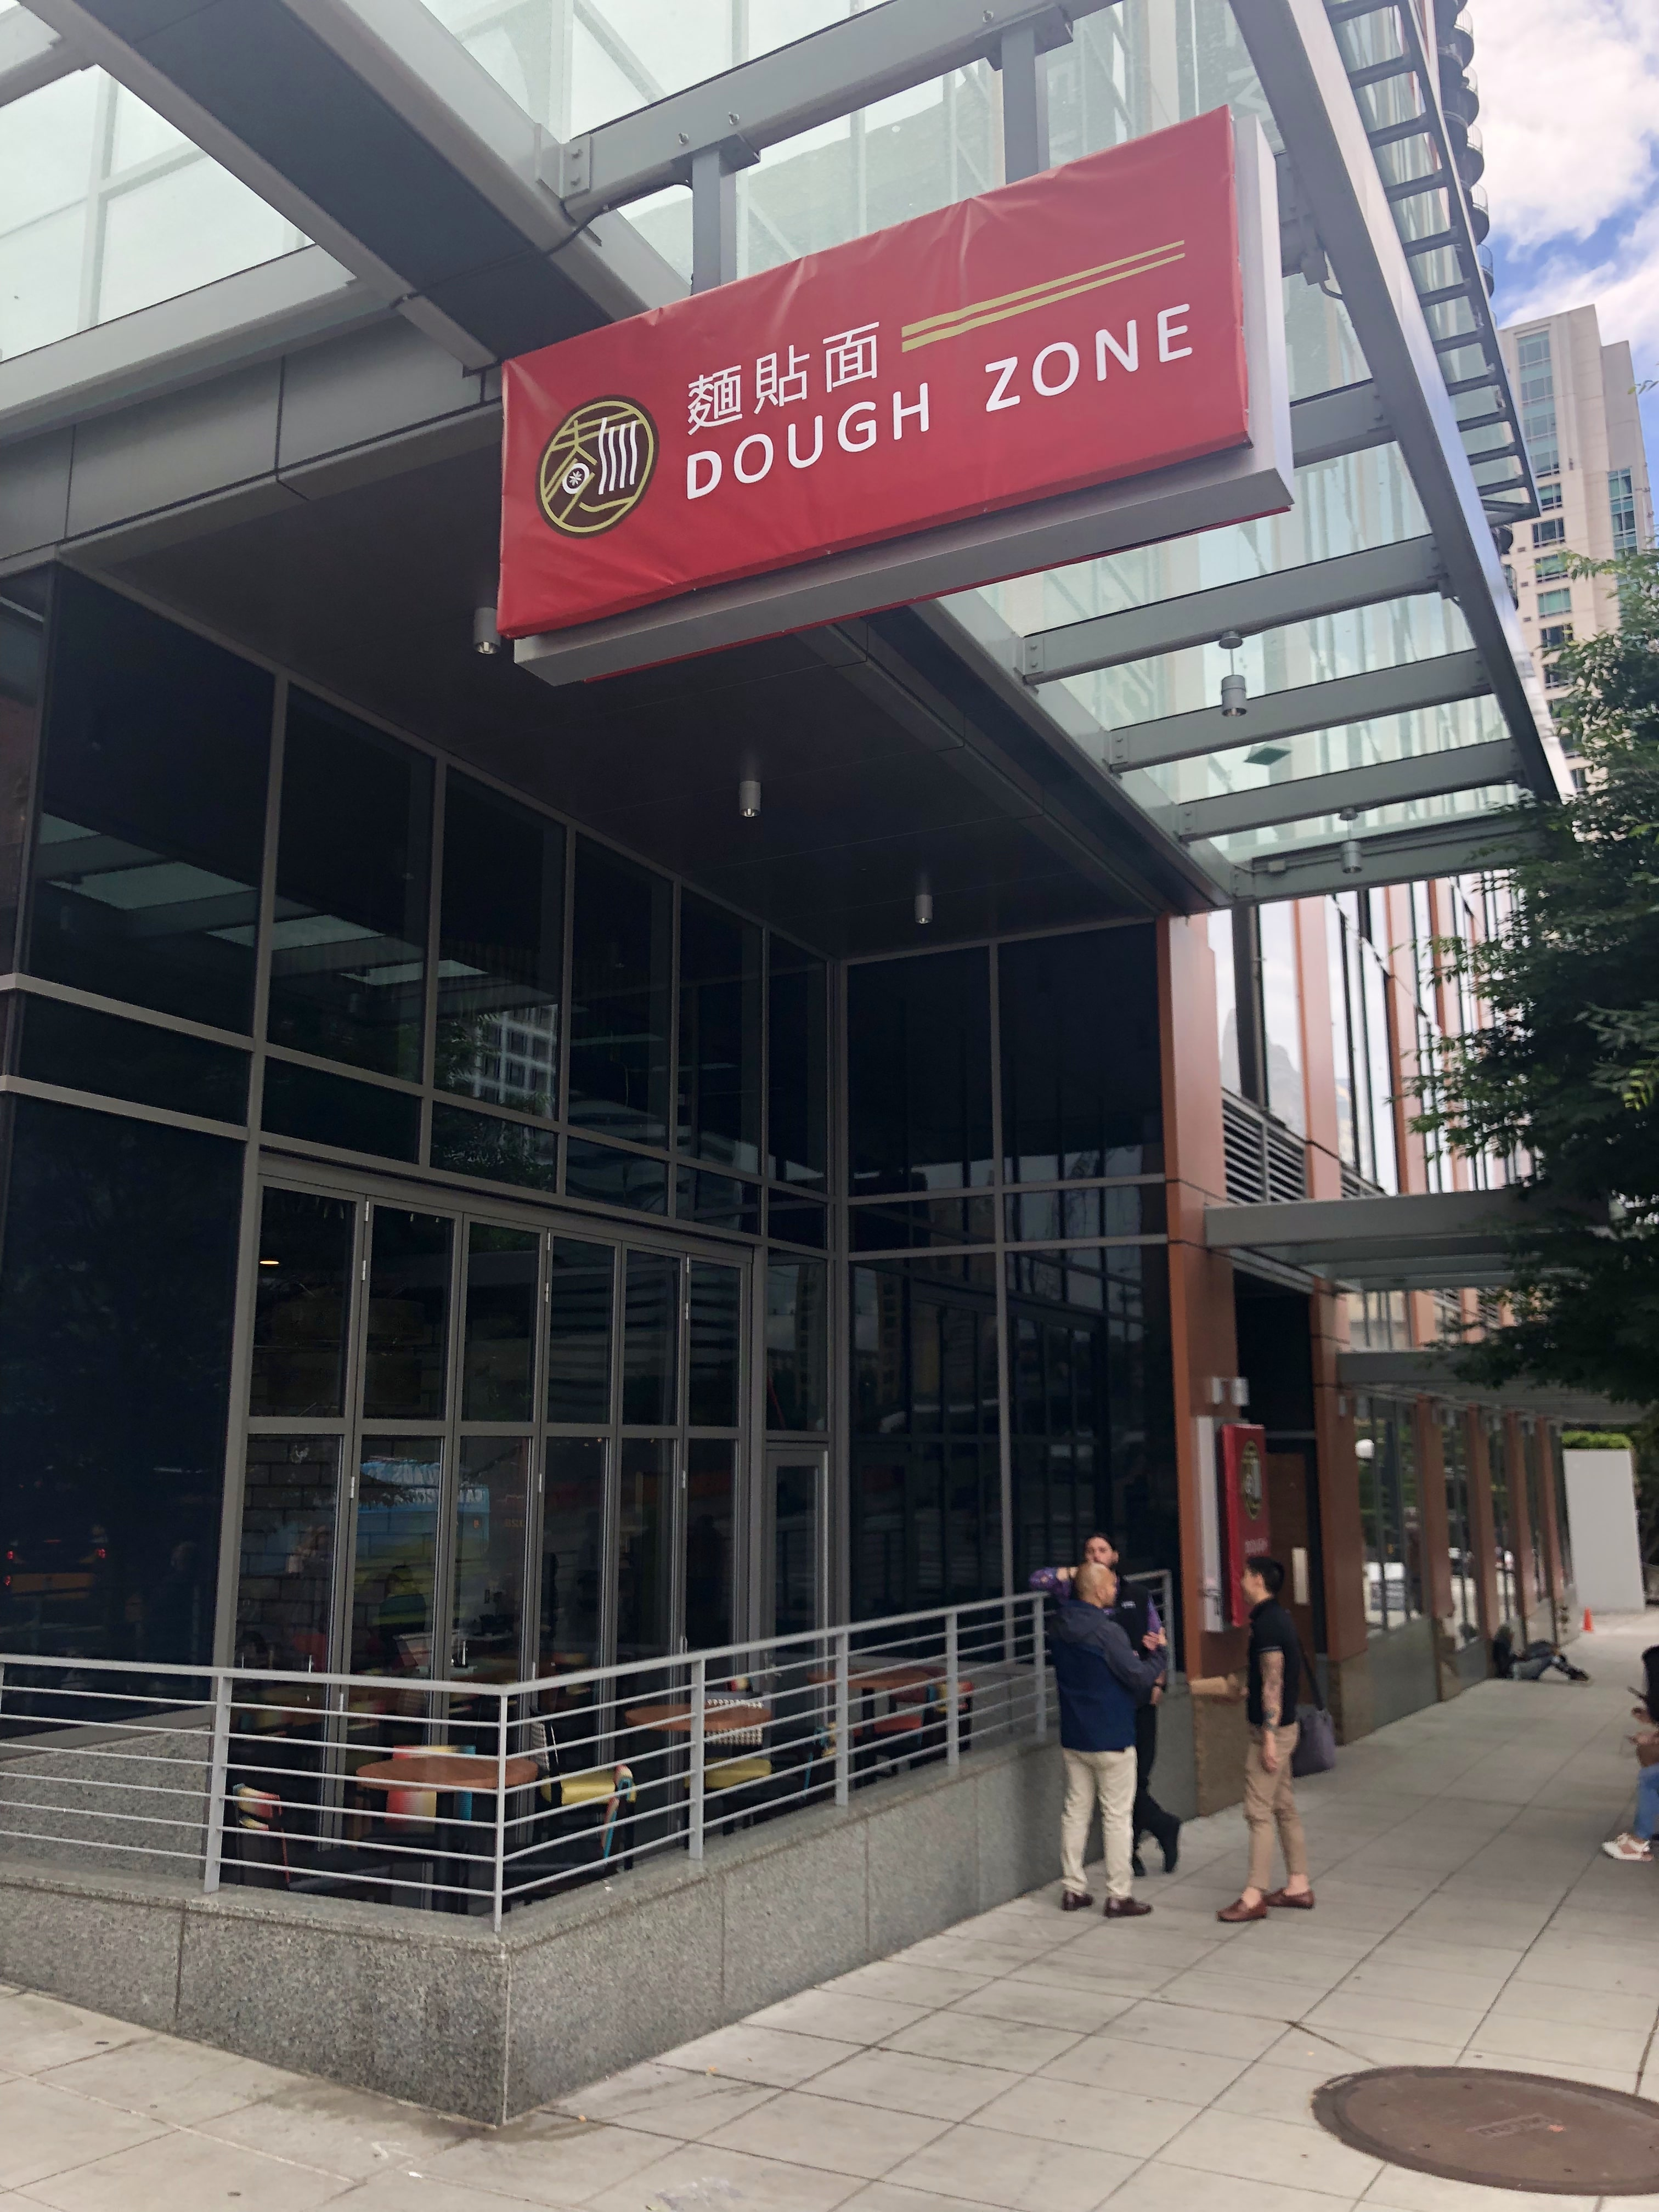 Dough Zone Downtown